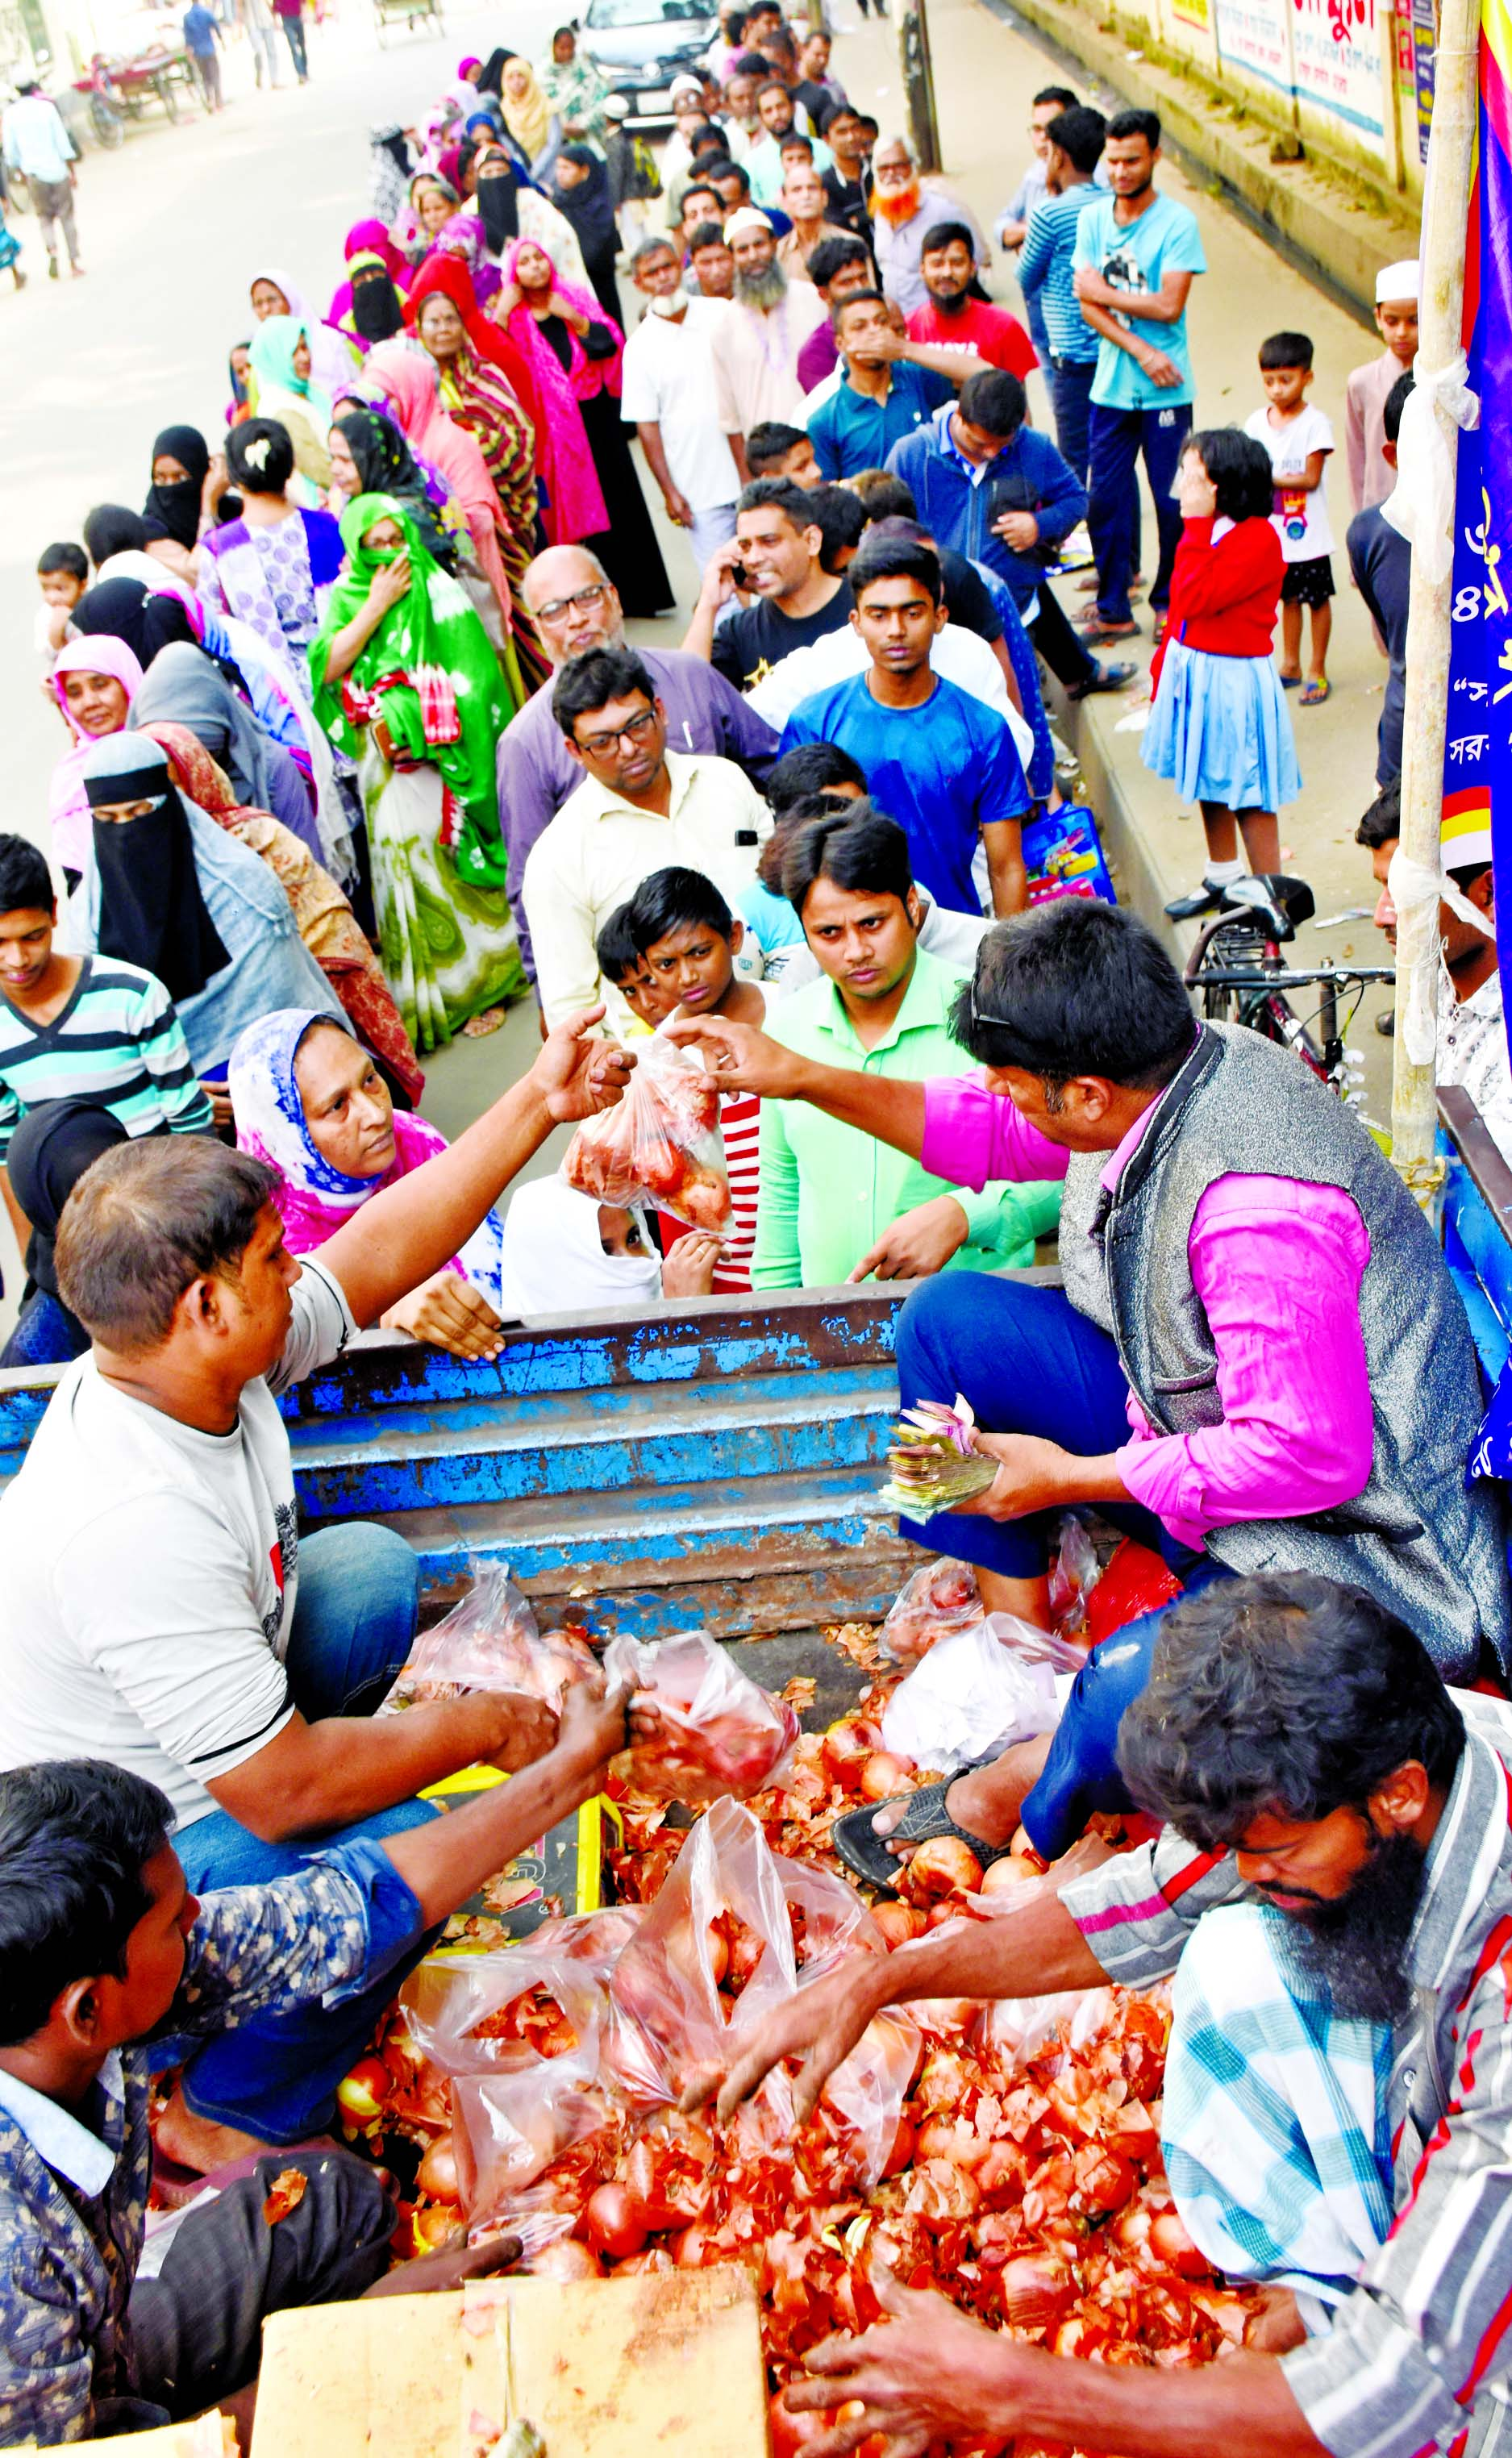 Consumers continue to form long queues to get onions at Tk 45 per kg sold by Trading Corporation of Bangladesh (TCB) at various points in the city as the prices of the key kitchen staple is still unstable. This photo was taken from in front of Azimpur Chhapra Mosque in Dhaka on Sunday.